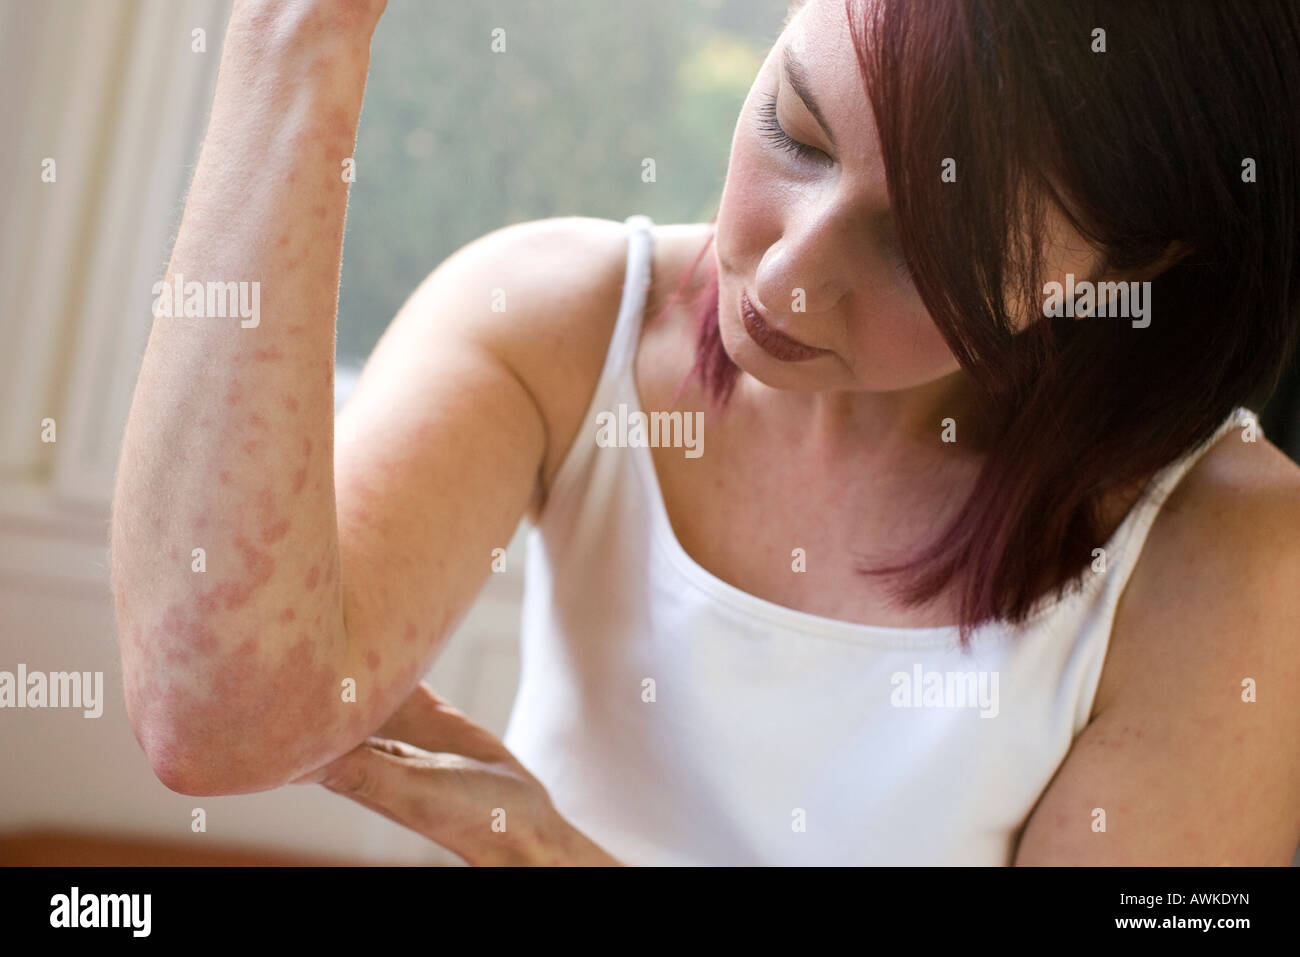 woman with rash on her arm - Stock Image